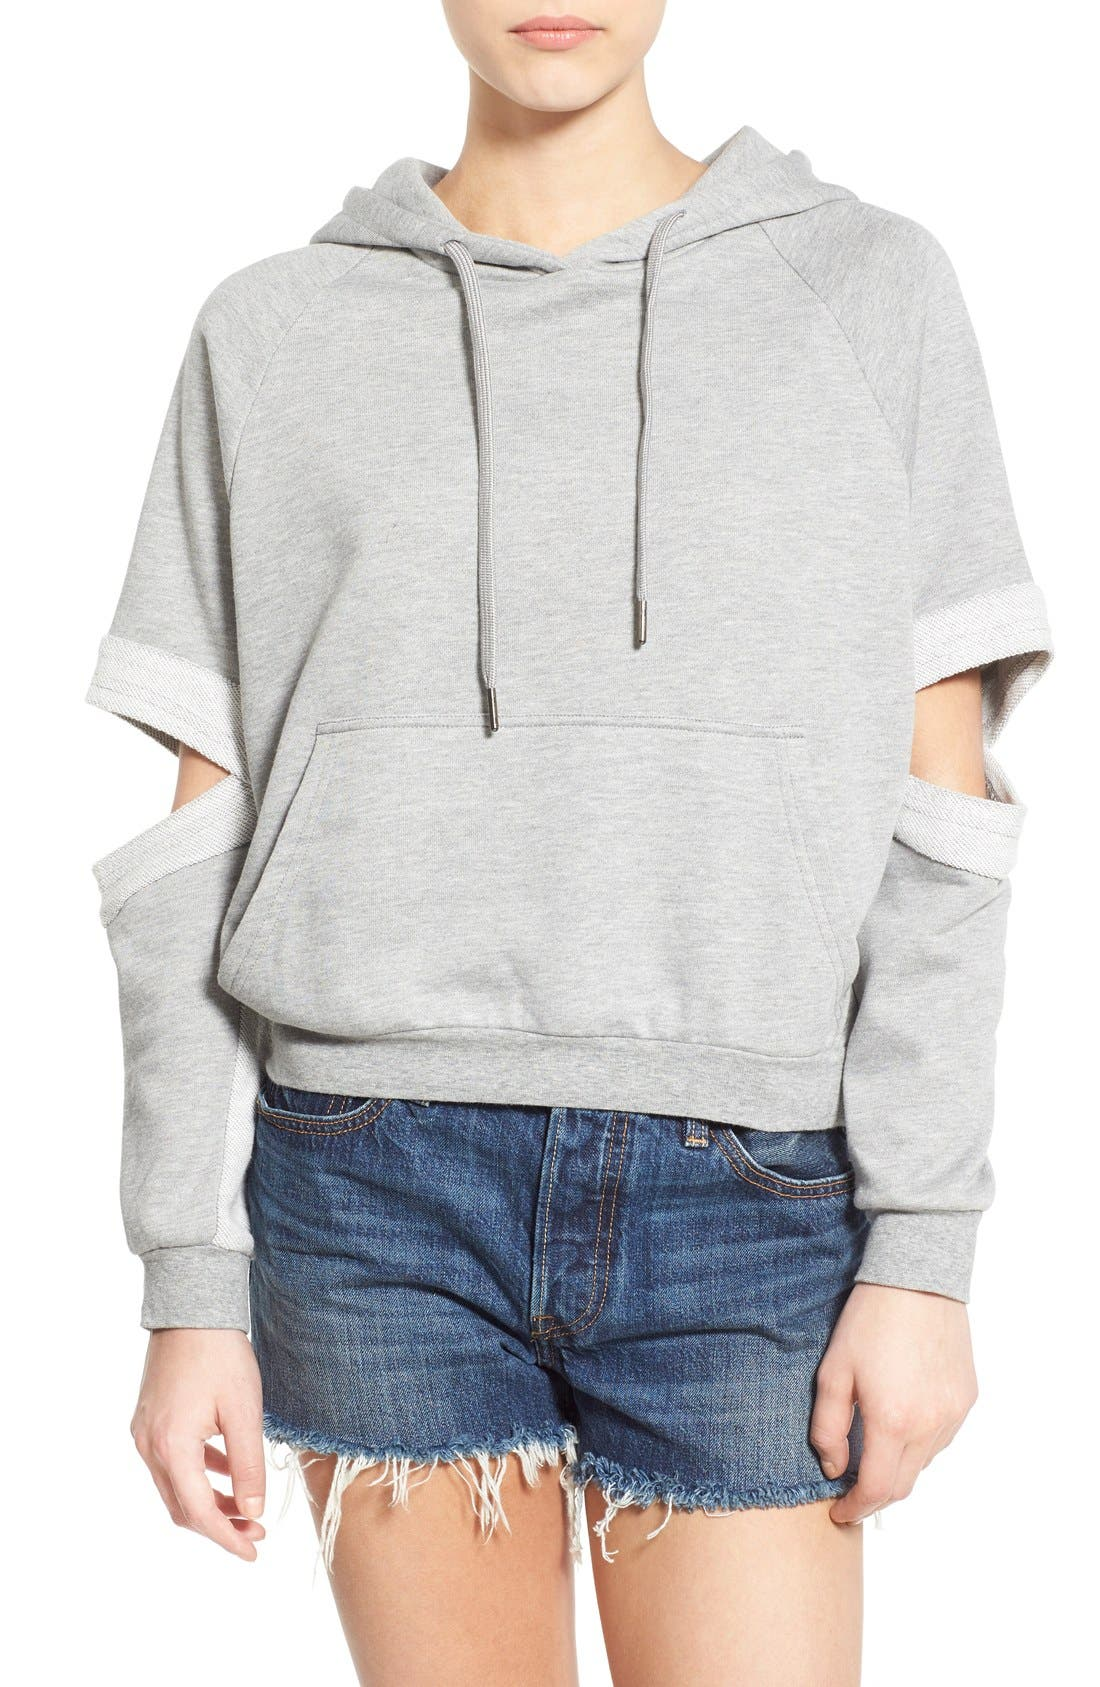 Alternate Image 1 Selected - PUBLISH BRAND 'Lucia' Cutout Sleeve Hoodie